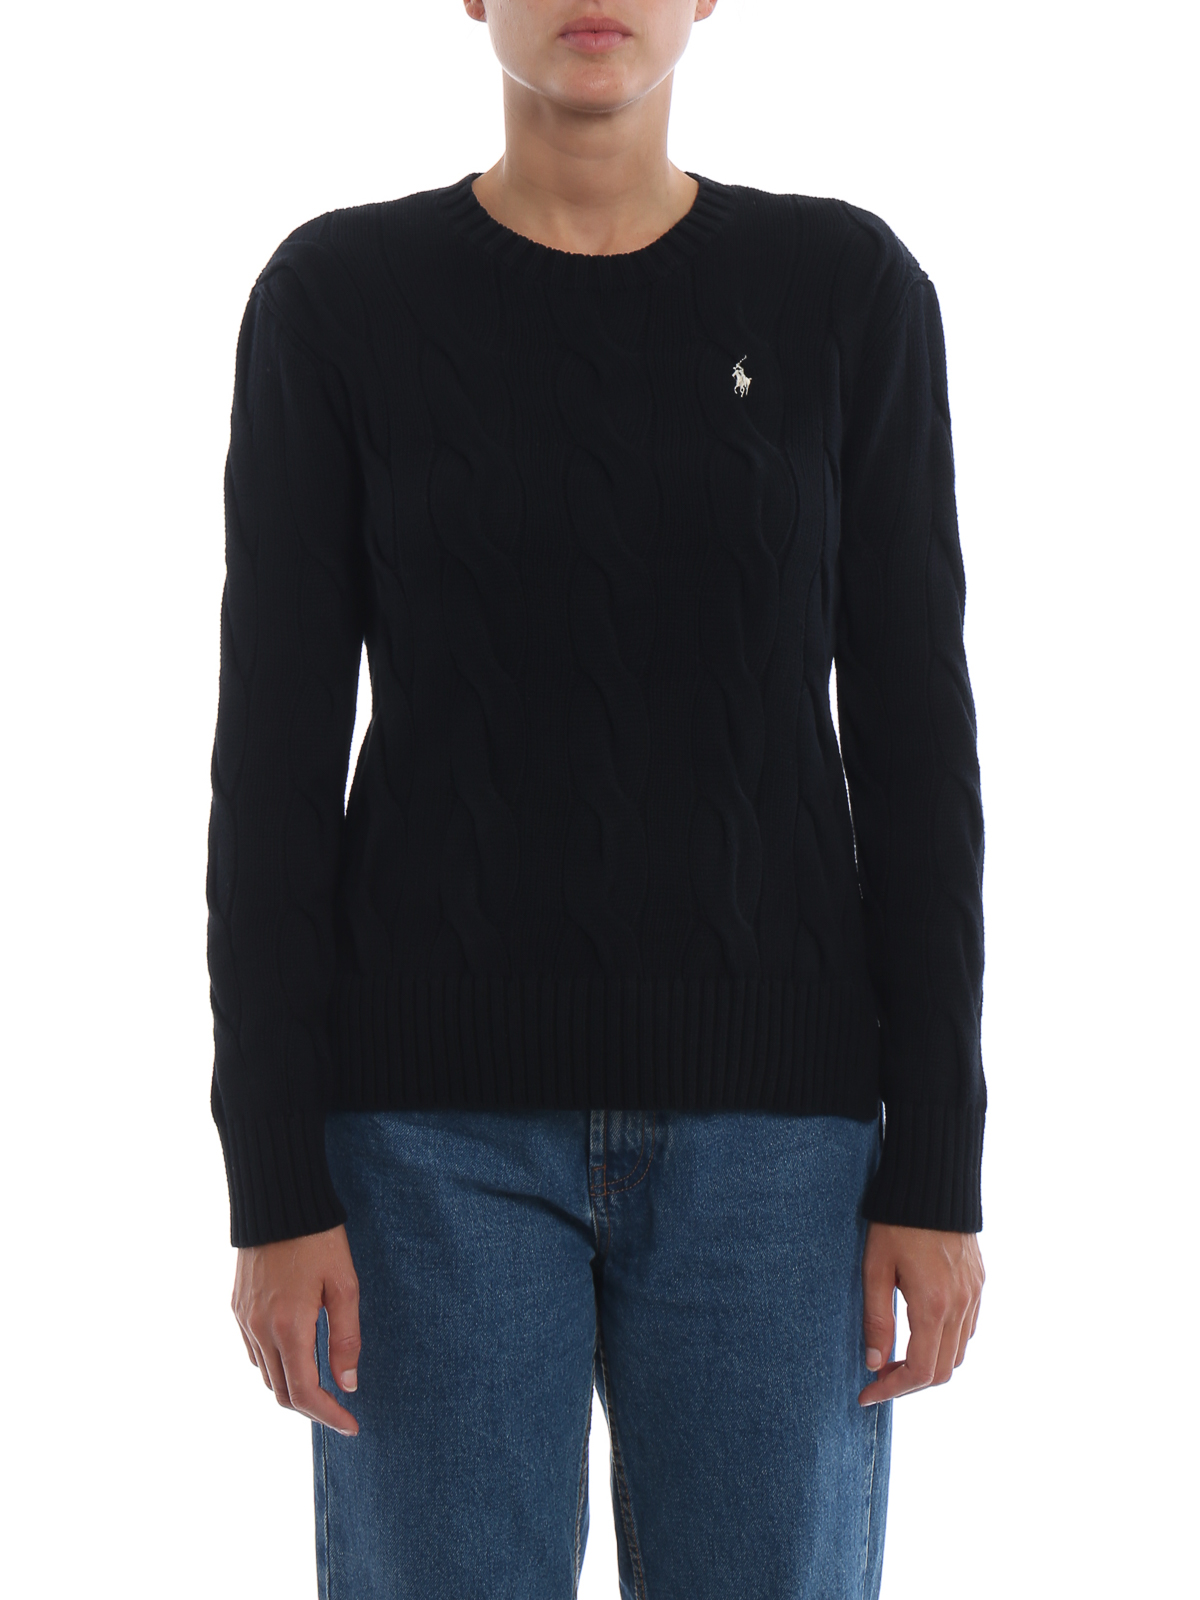 958c743f1fac iKRIX POLO RALPH LAUREN  crew necks - Cable knit faded black cotton sweater